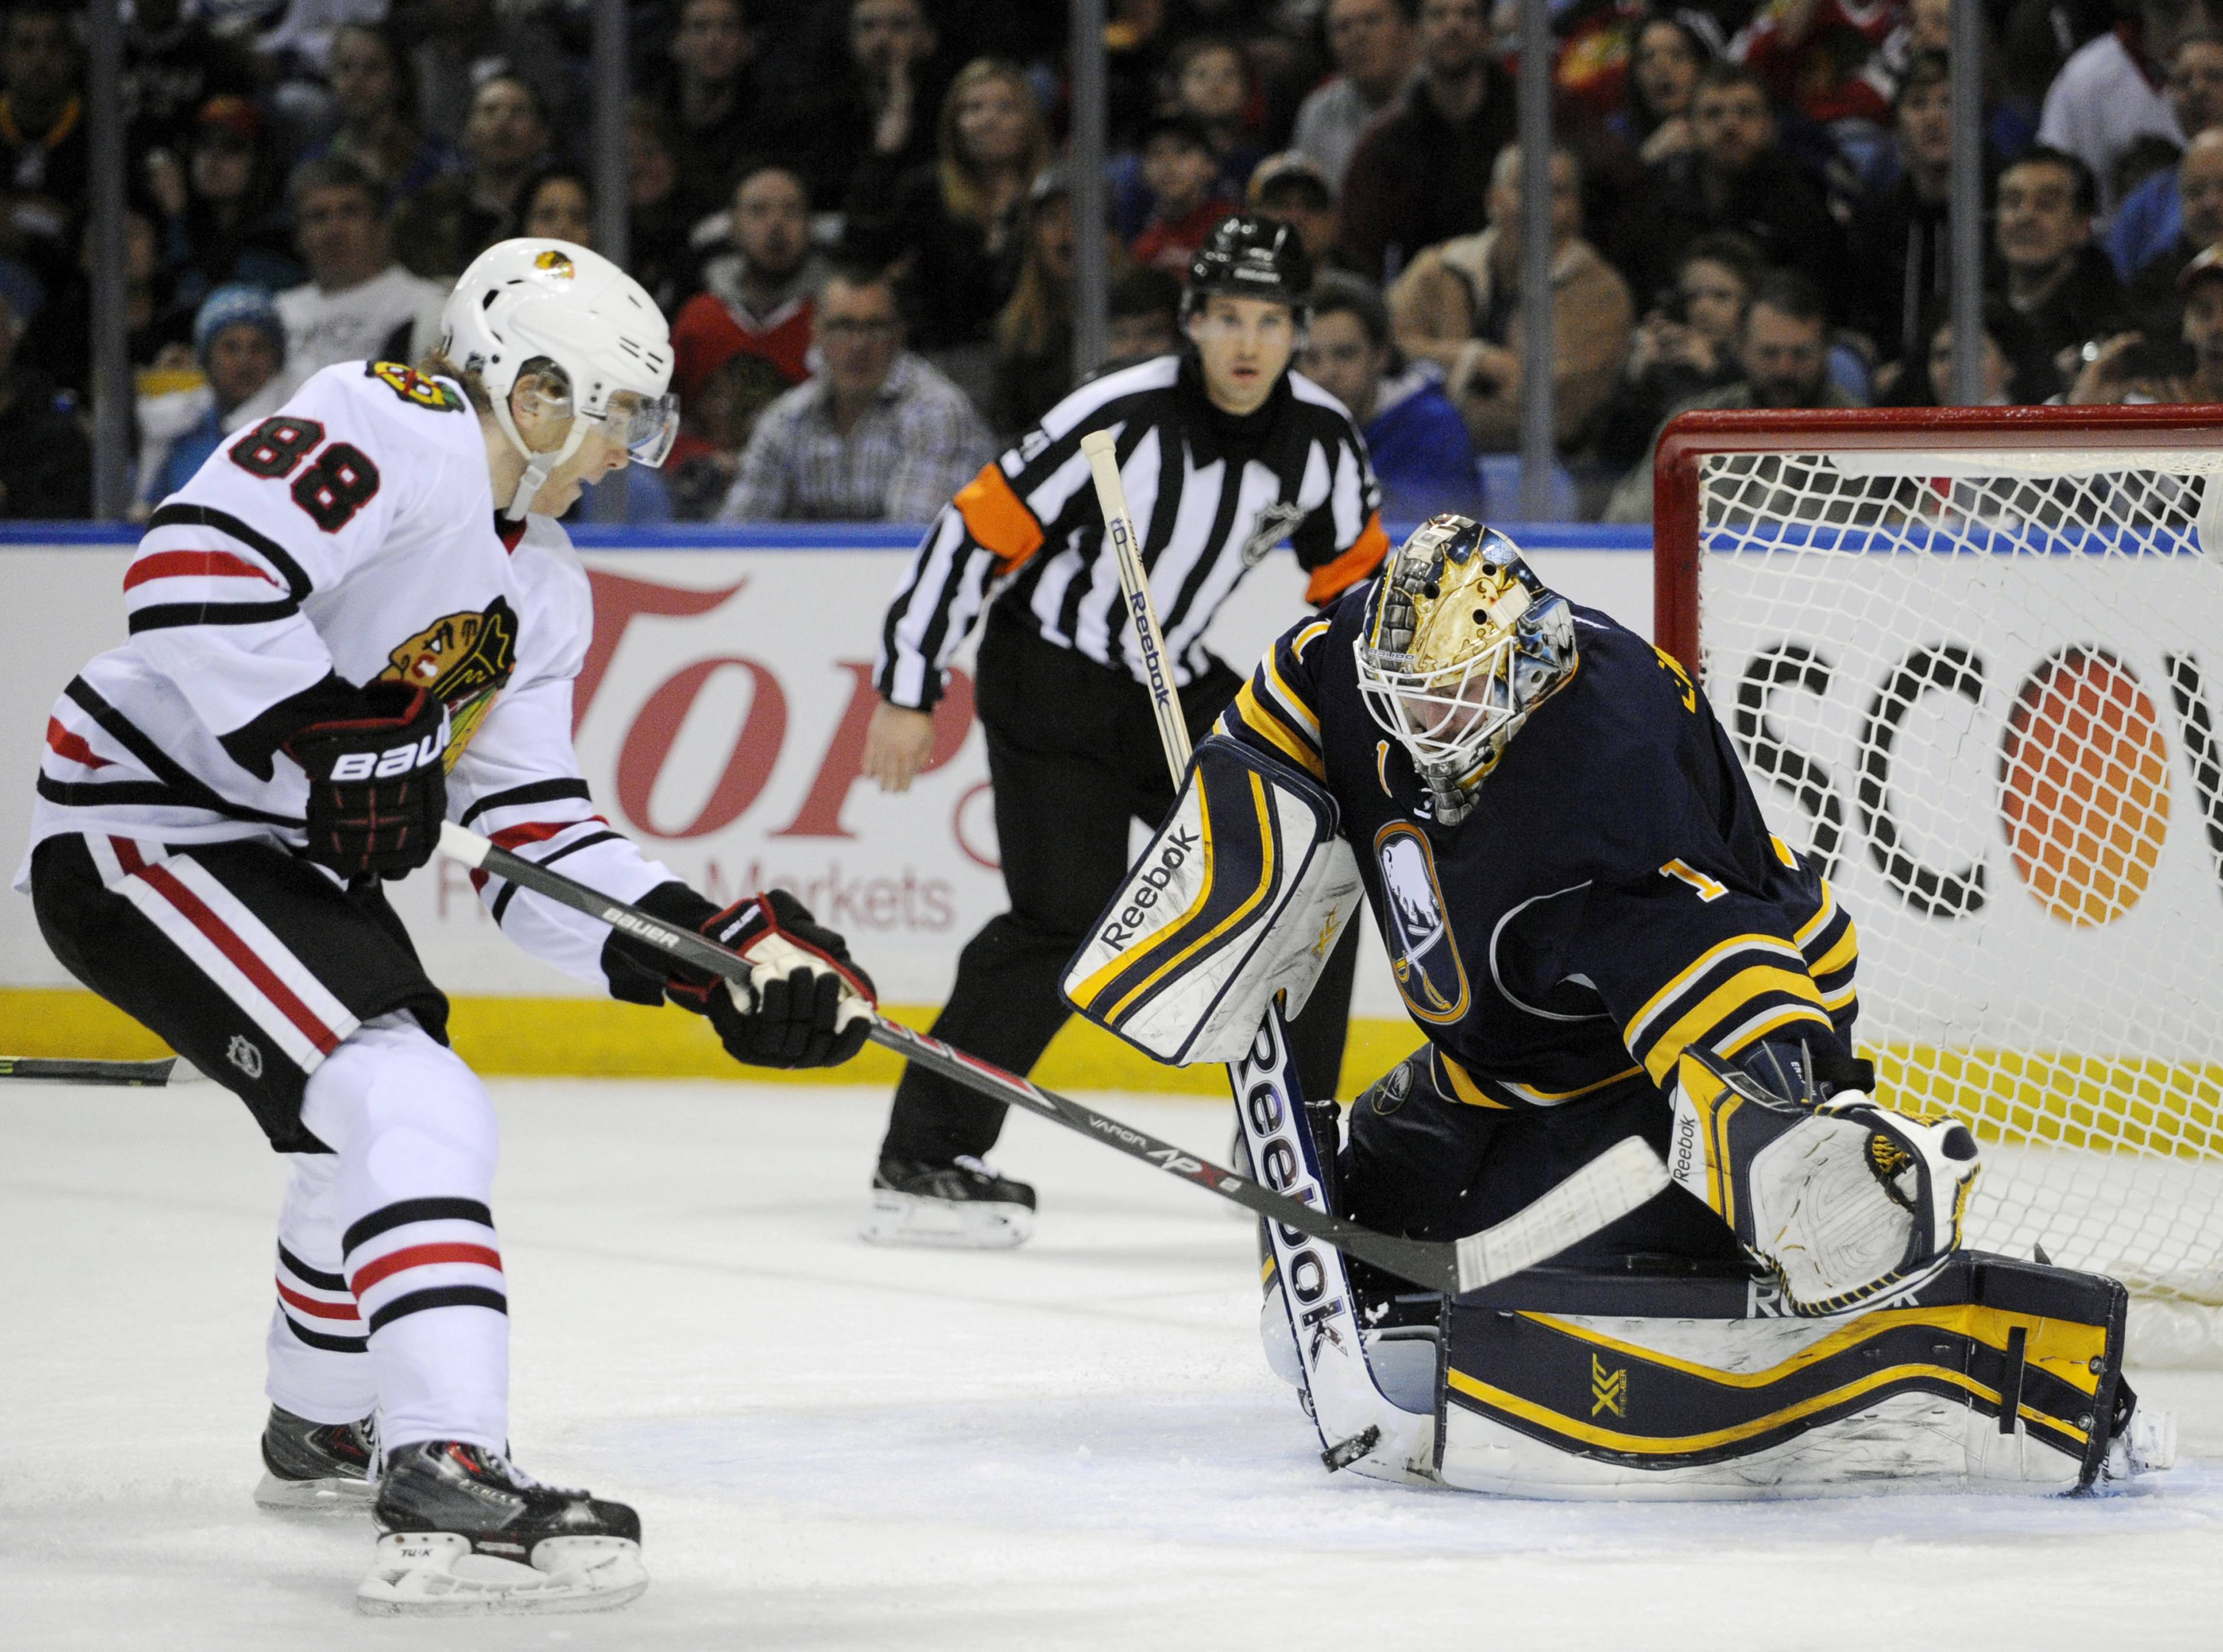 Patrick Kane gets stopped on a breakaway by Sabres goaltender Jhonas Enroth, but it was Kane who opened the scoring early in the first period Sunday night.